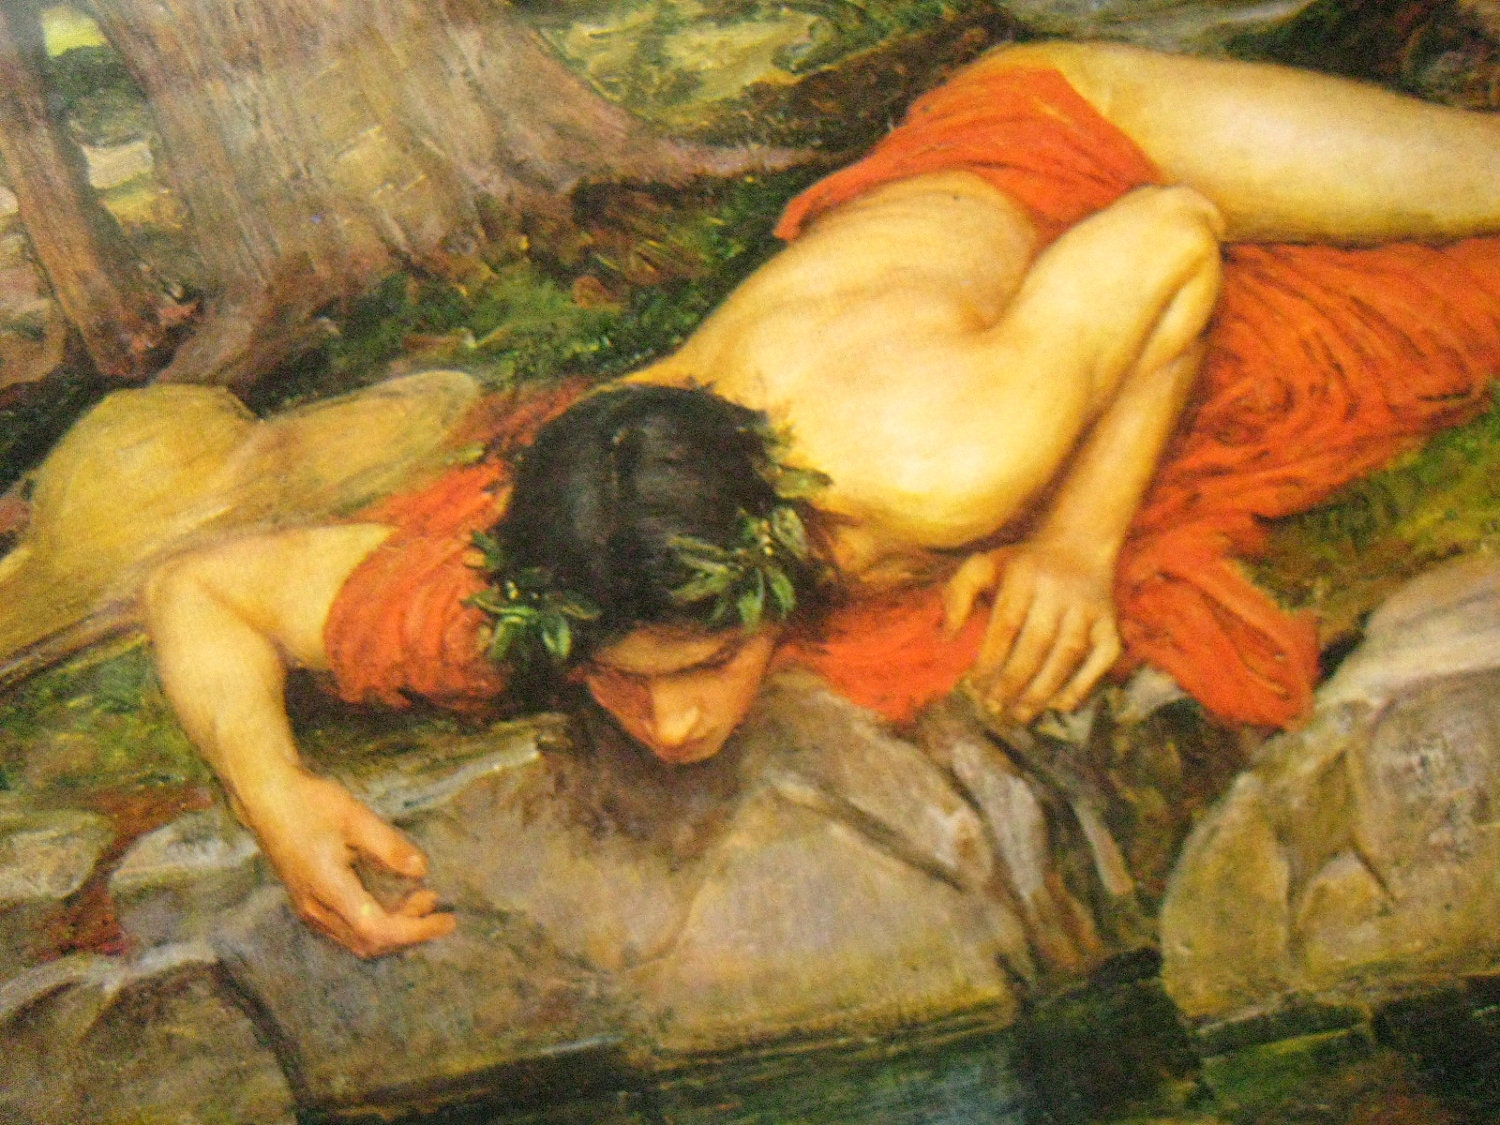 narcissus greek mythology narcissus ancient history encyclopedia